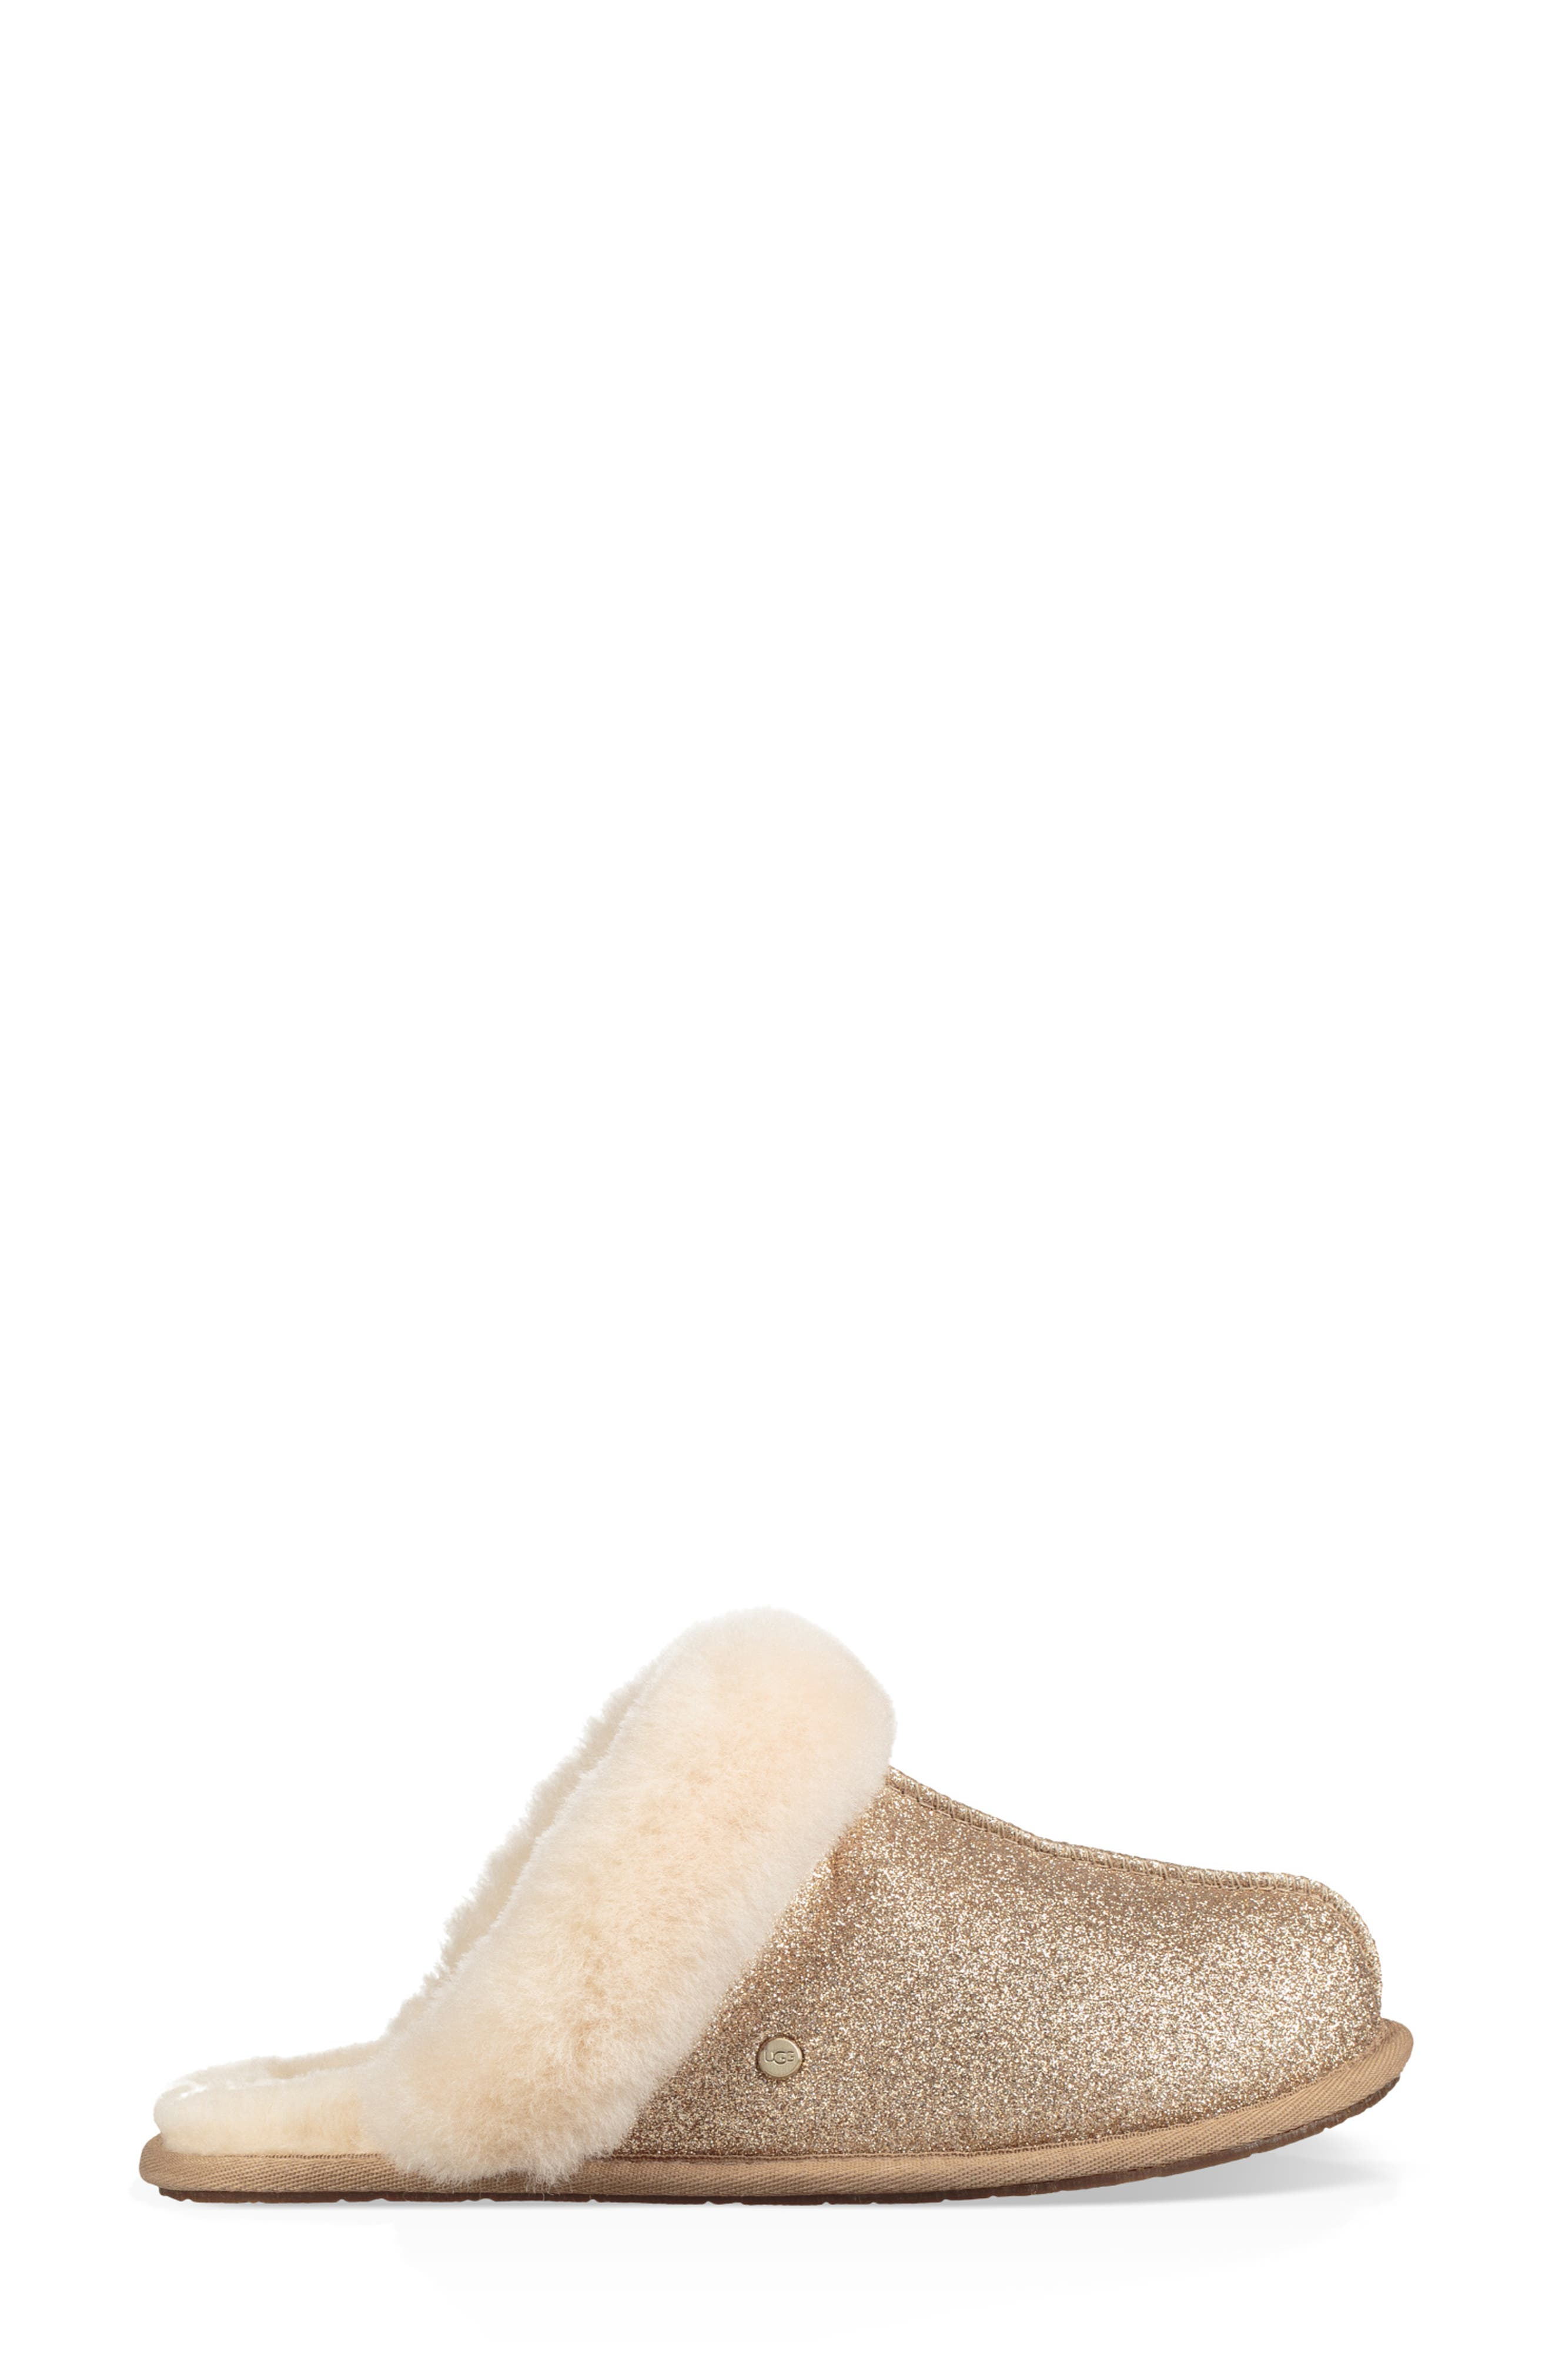 UGG<SUP>®</SUP>, Scuffette II Sparkle Genuine Shearling Slipper, Alternate thumbnail 3, color, GOLD